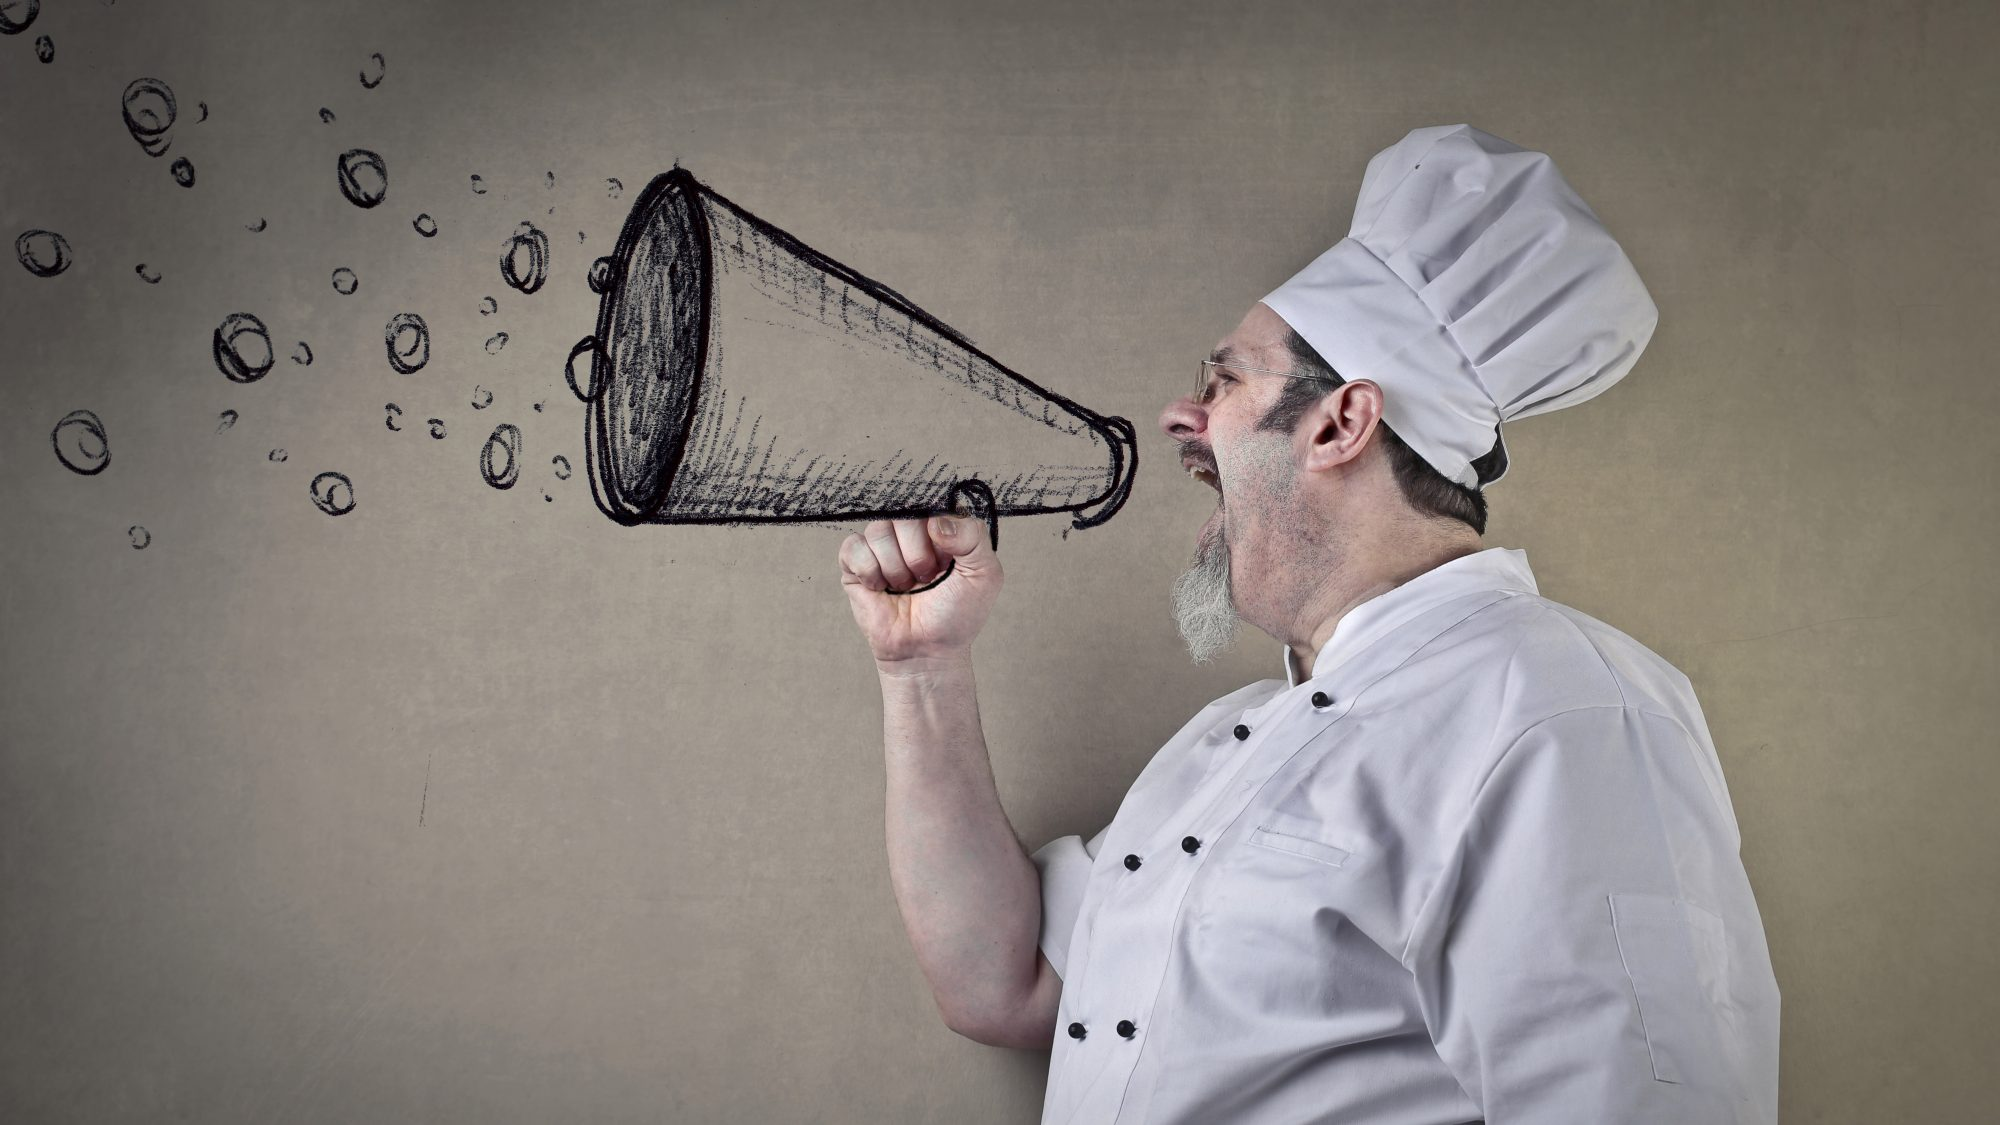 chef shouting on megaphone